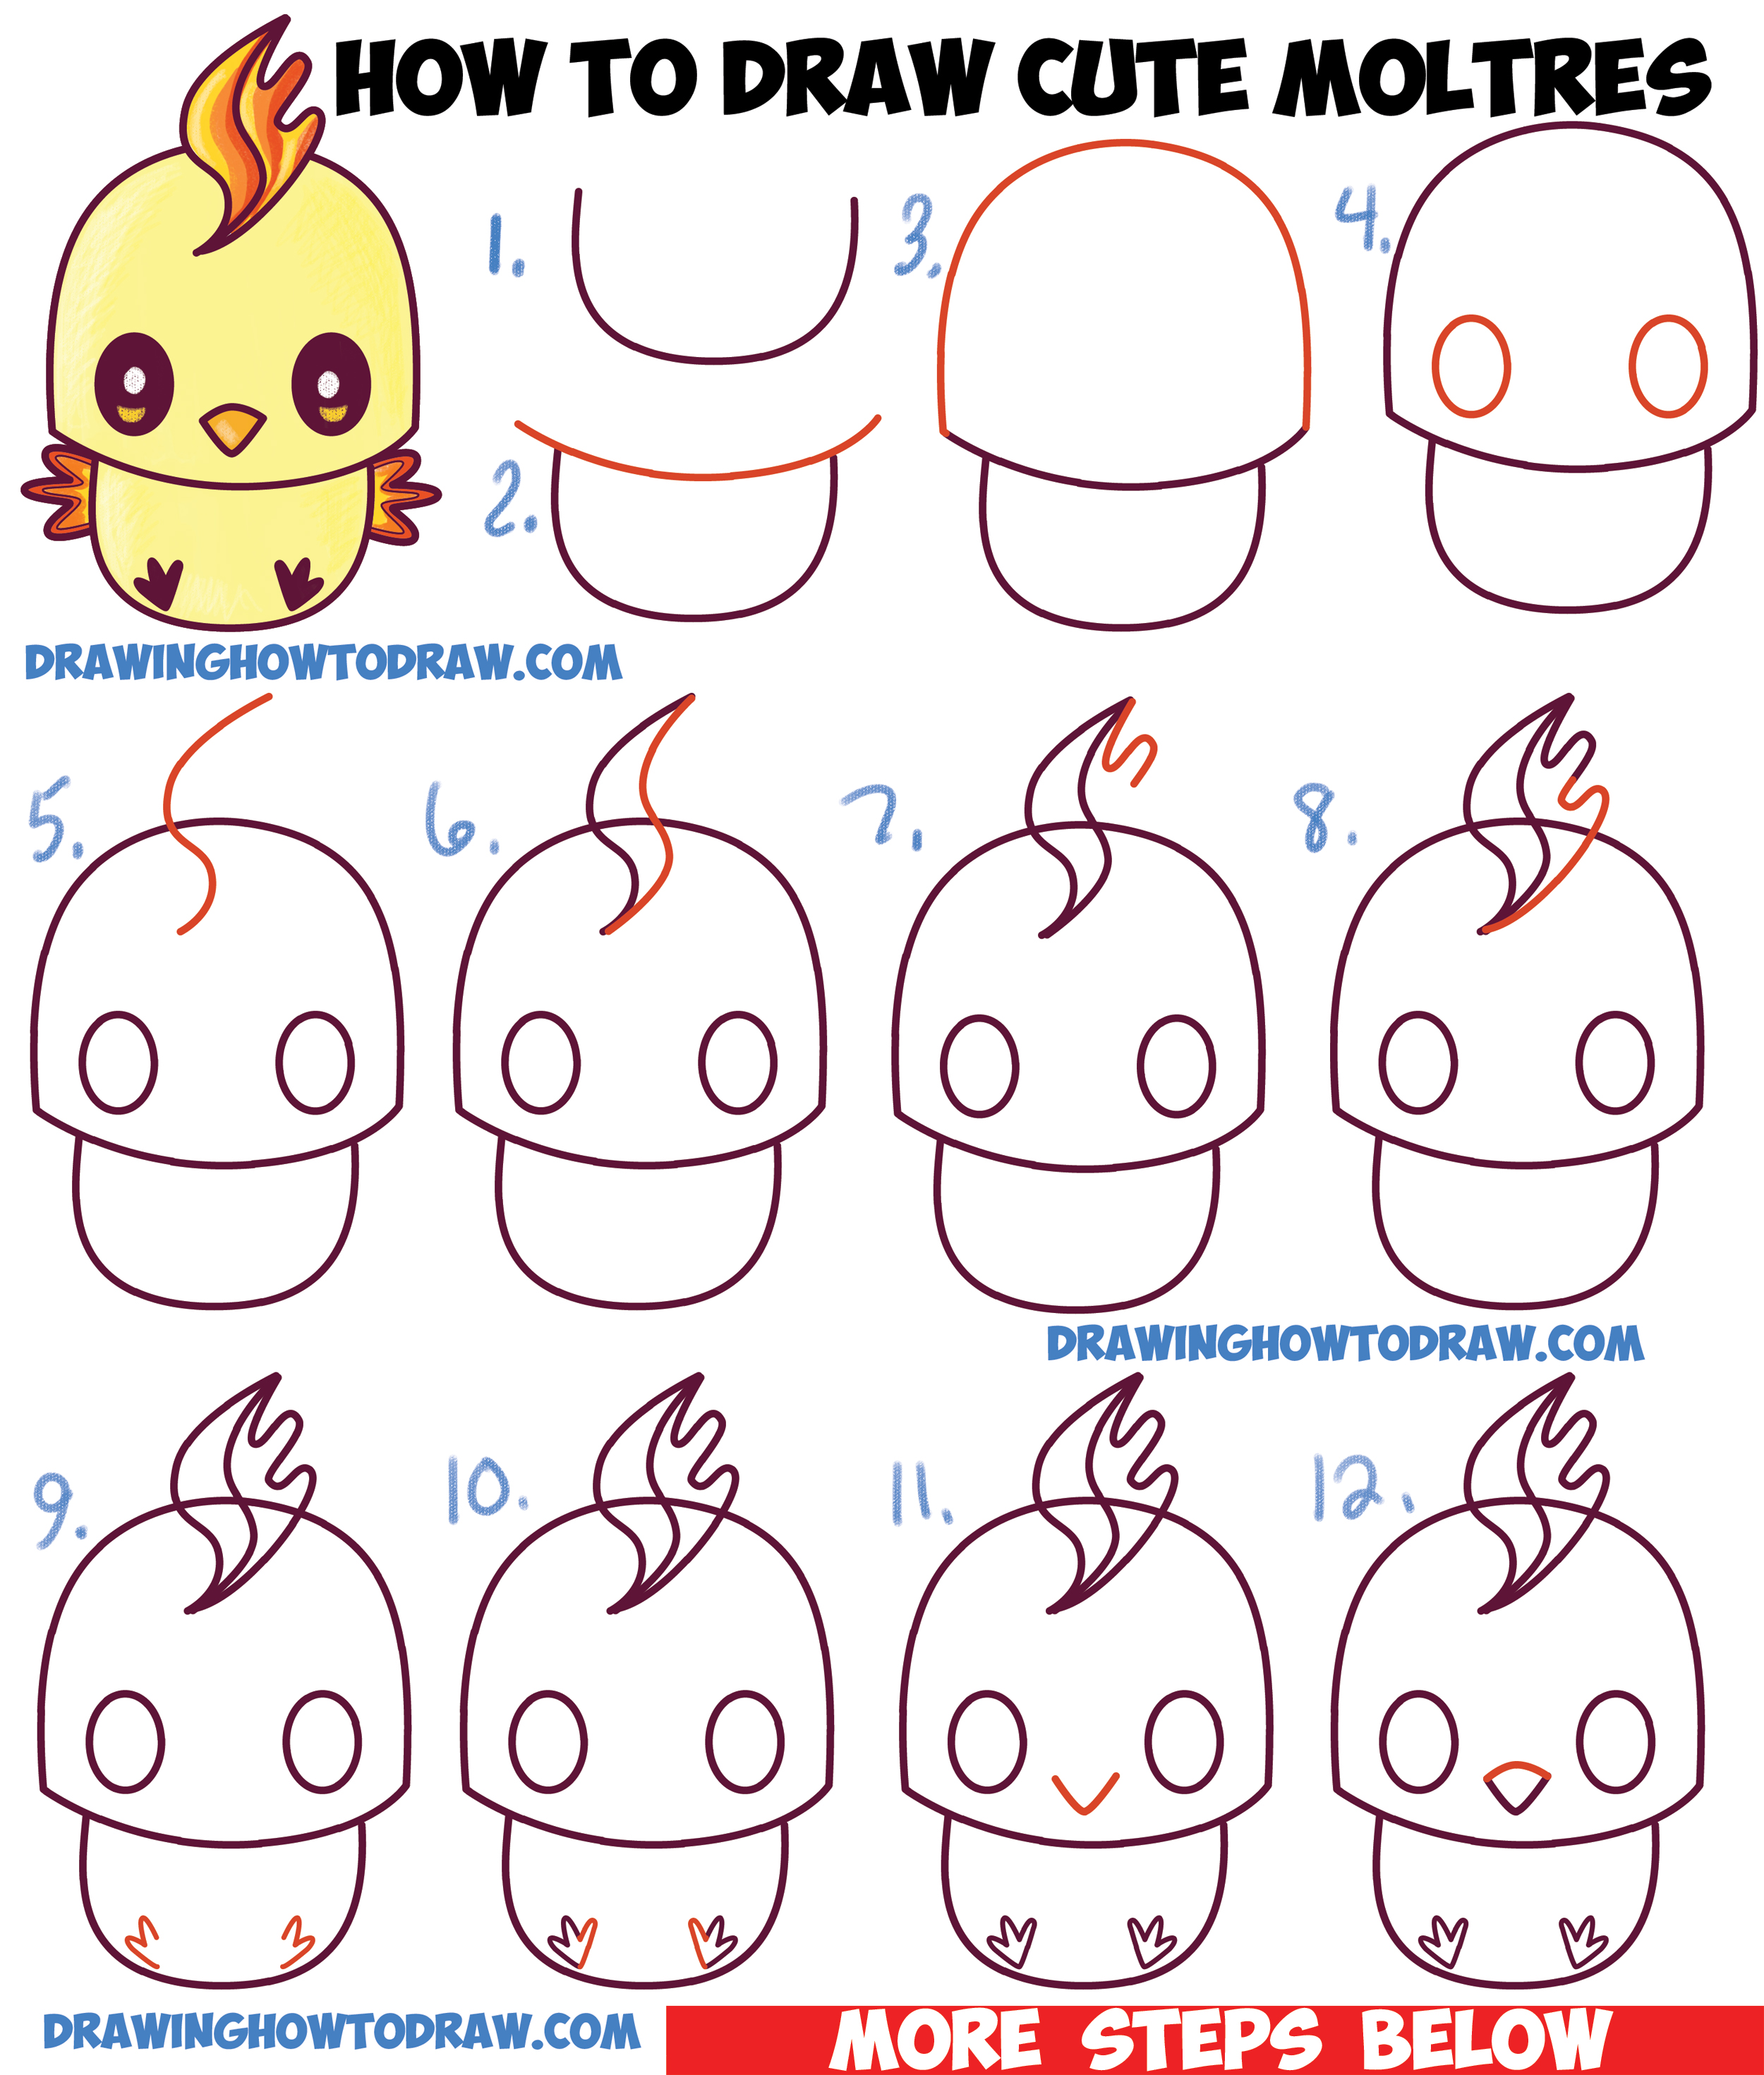 How To Draw Cute Kawaii Chibi Moltres From Pokemon In